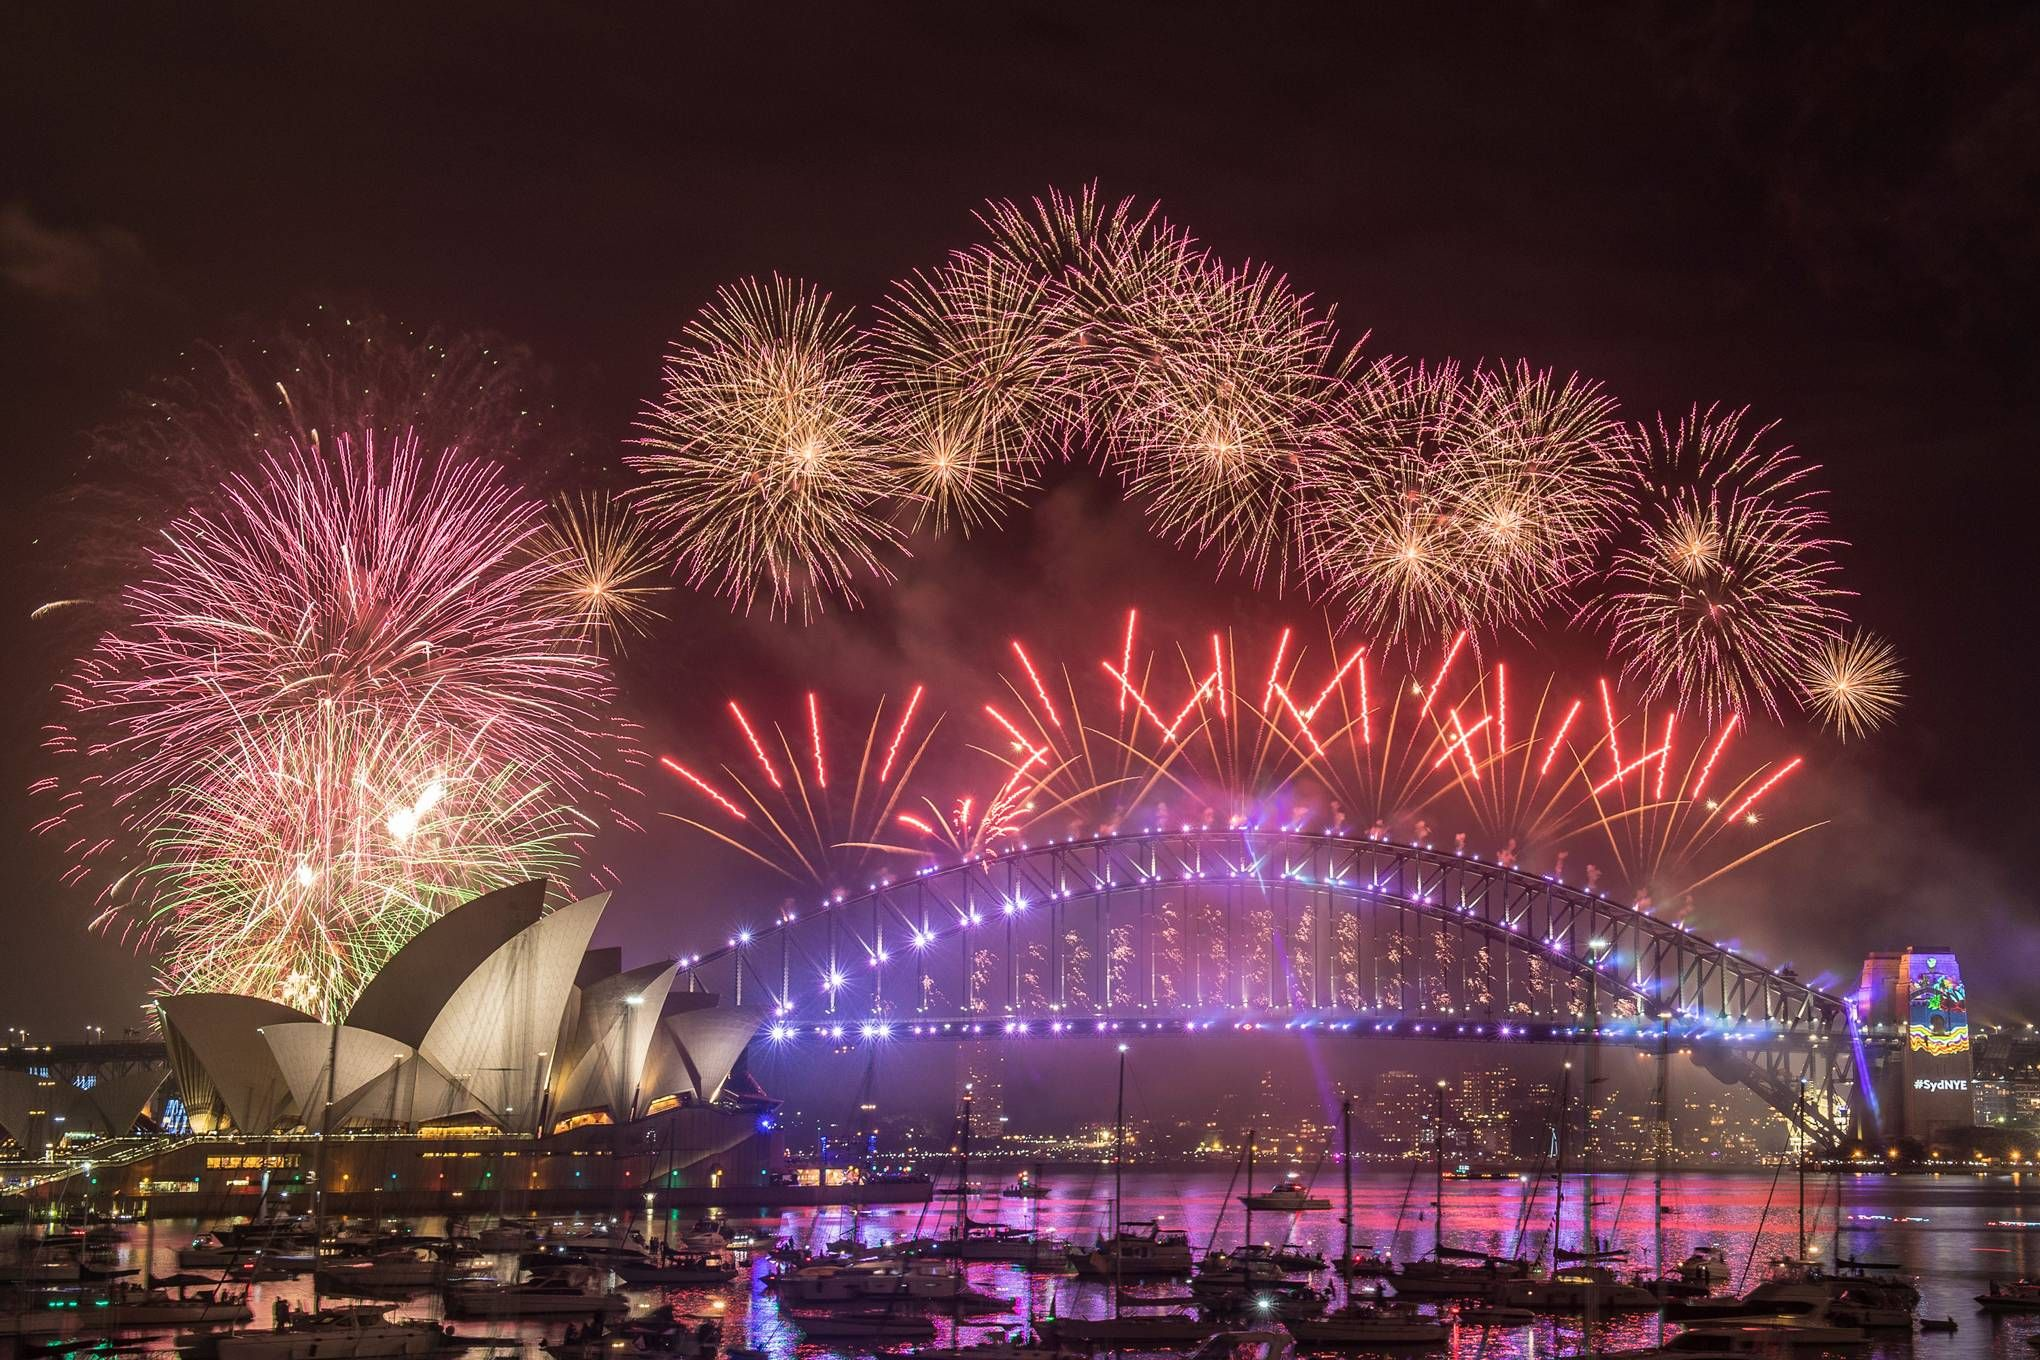 The Best New Year S Eve Holiday Destinations Around The World 2020 In 2020 Celebration Around The World New Year S Eve Around The World New Year Fireworks